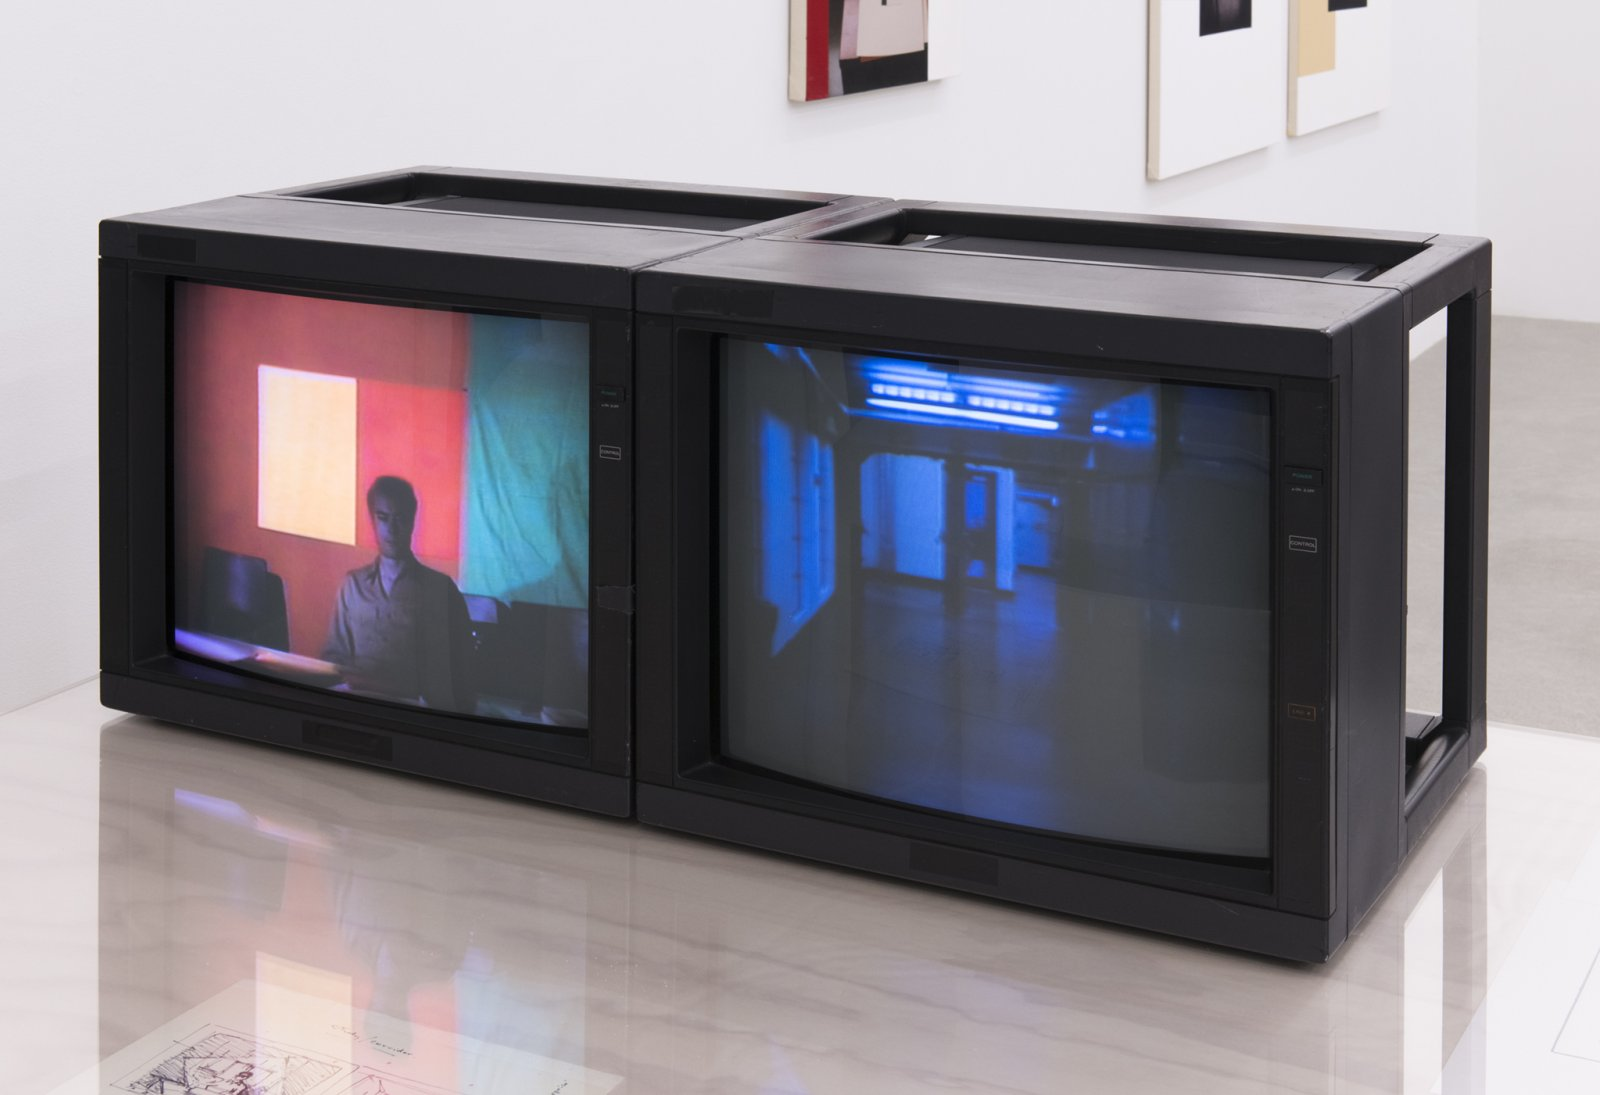 Ian Wallace,Study Corridor, 1983, 2 channel video, 3/4 inch video transferred to DVD